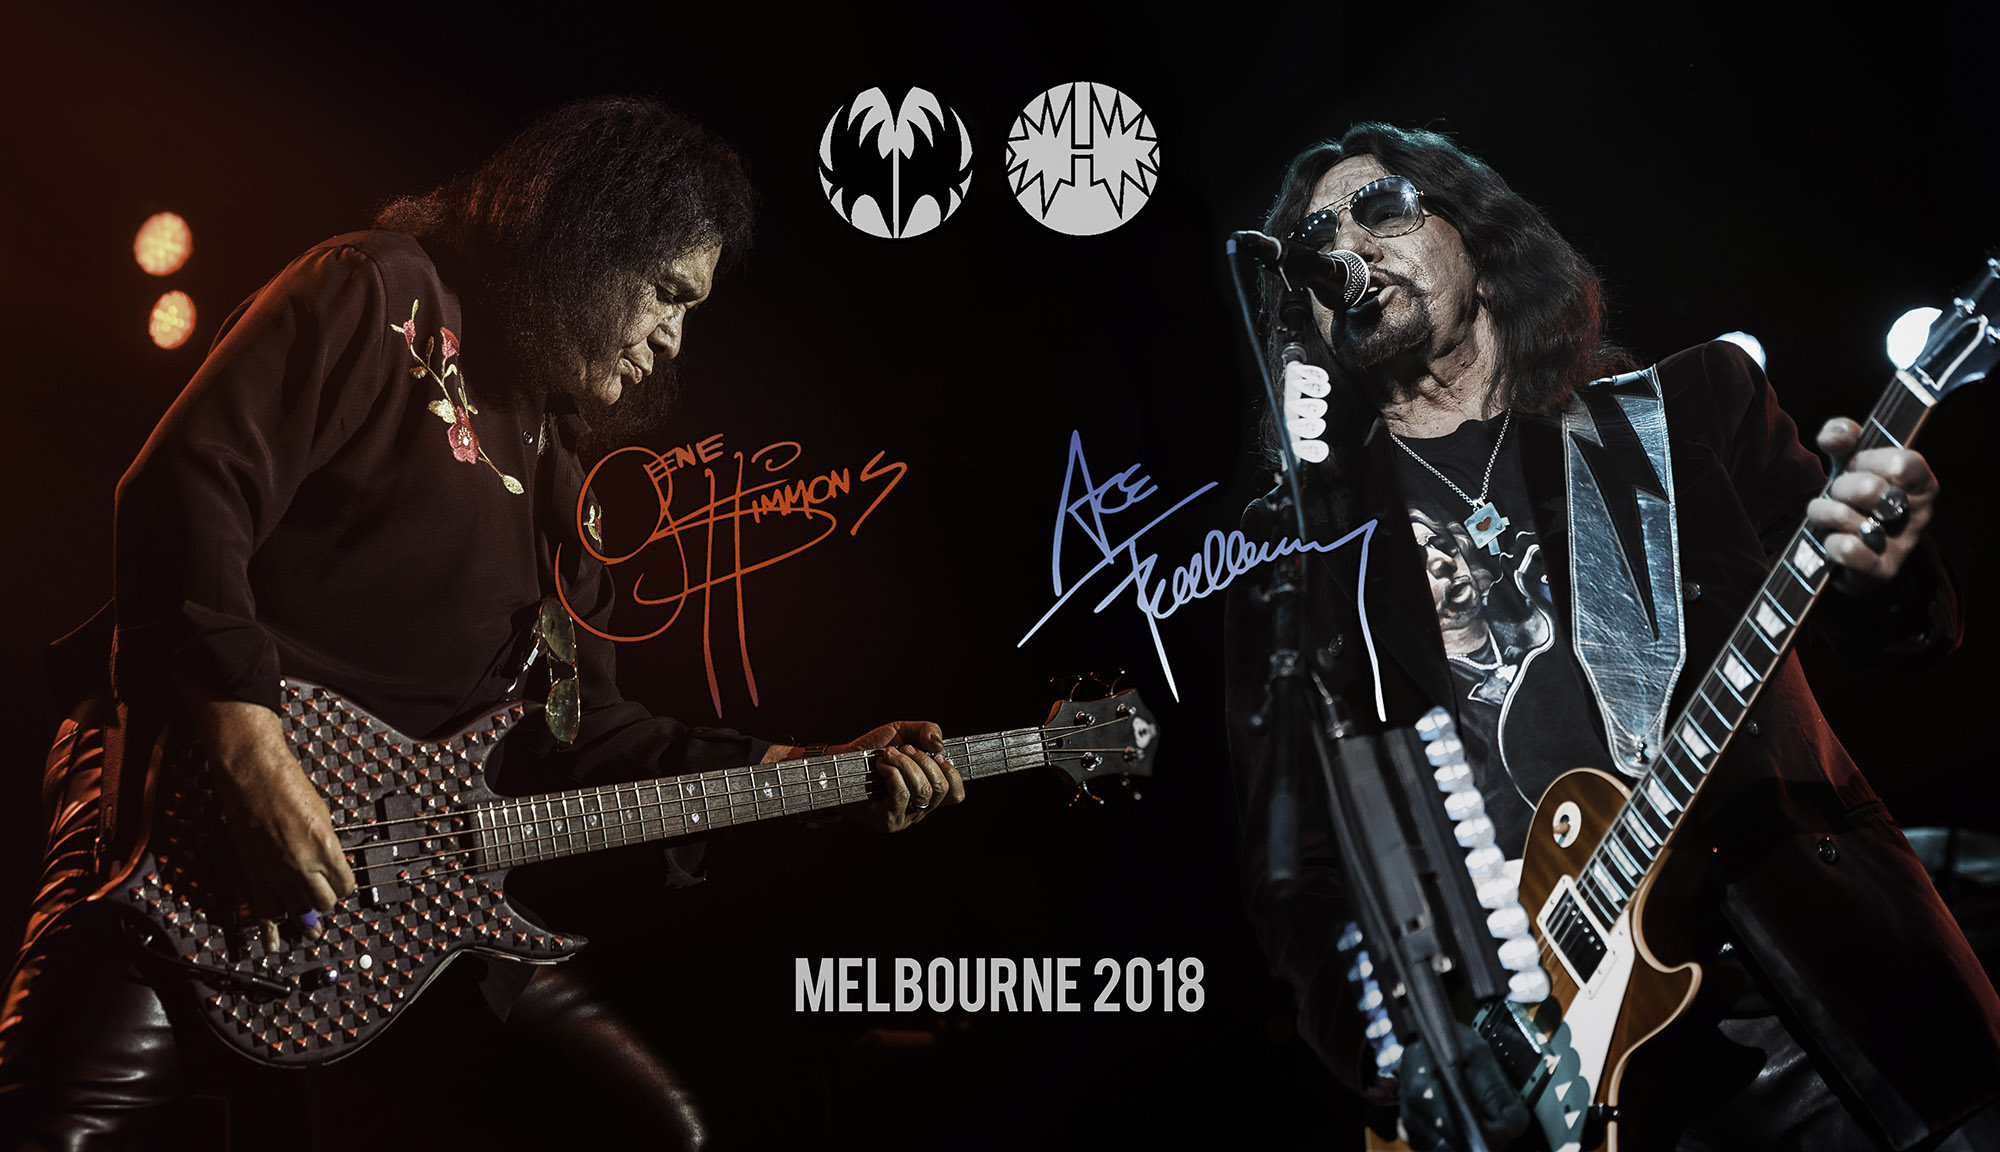 GENE SIMMONS with ACE FREHLEY  - Live in Melbourne - 30/8/18